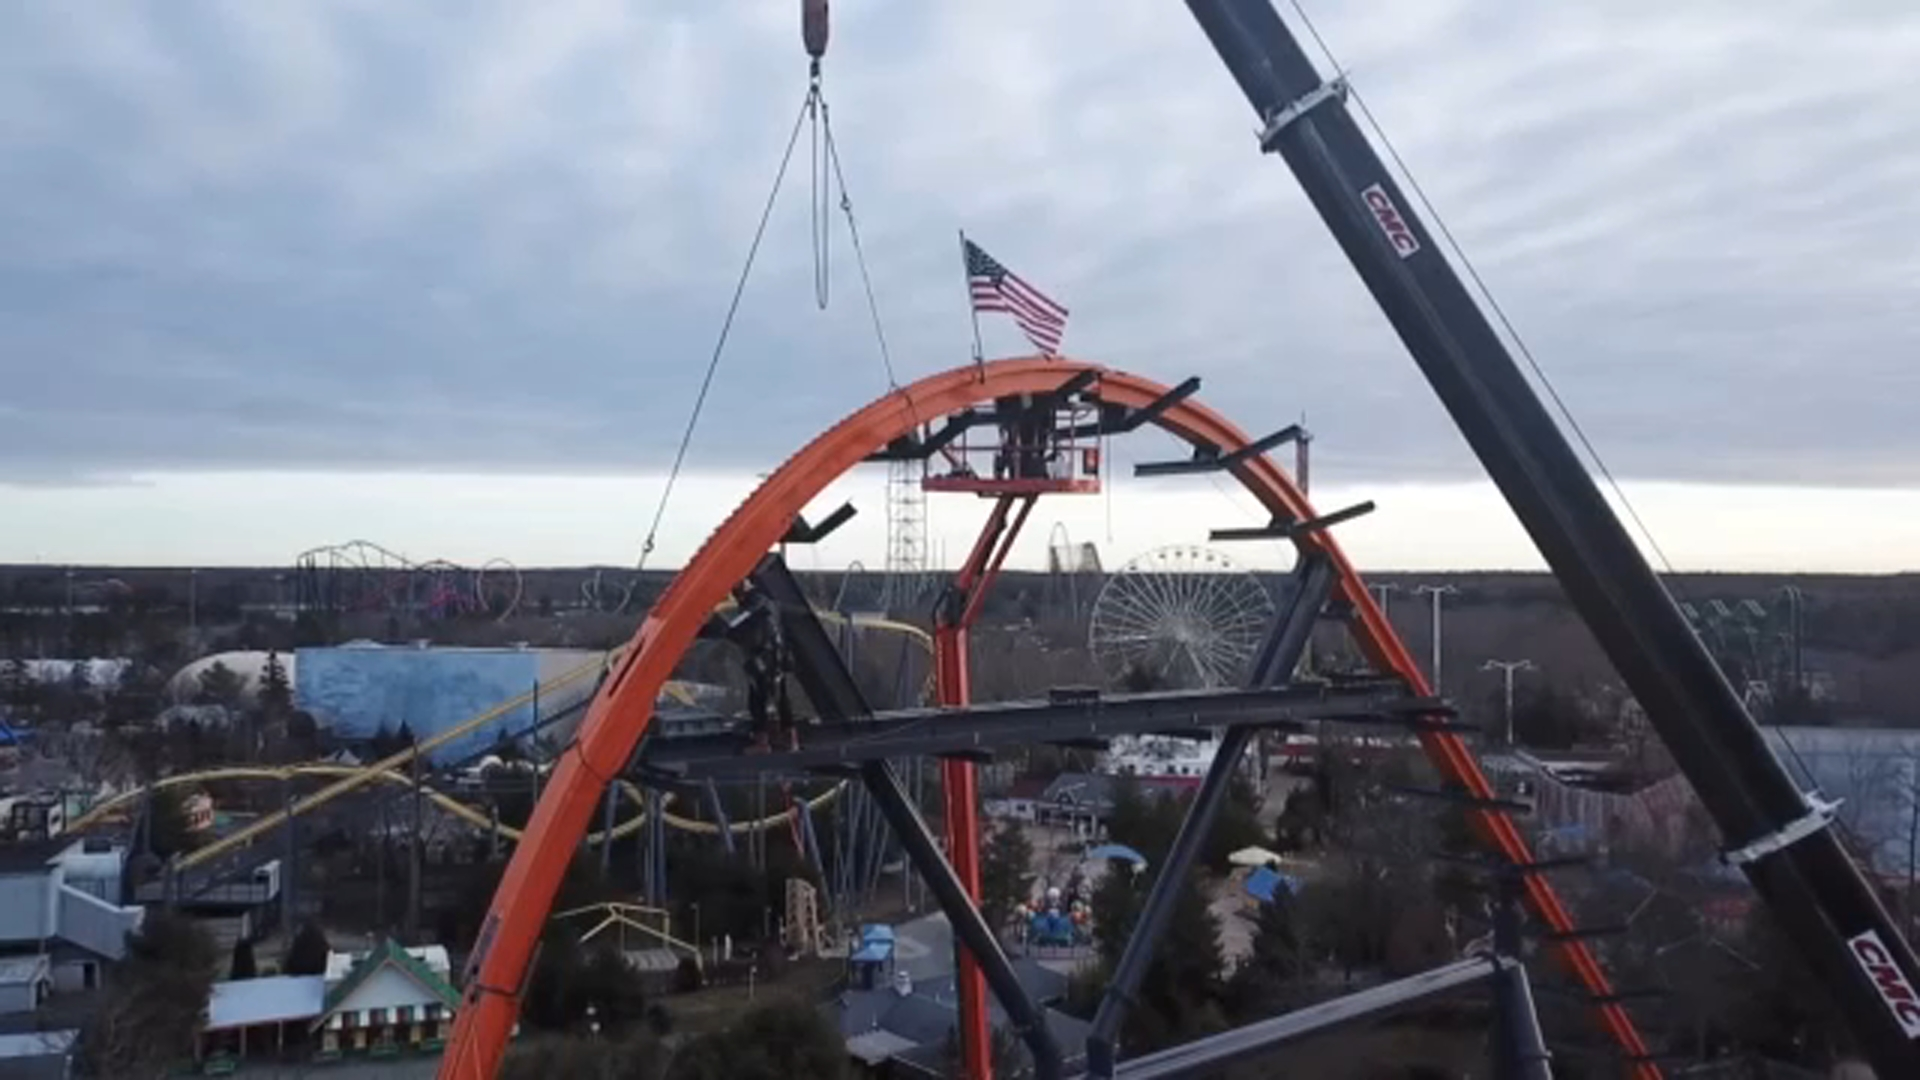 Six Flags New Ride Jersey Devil S Last Piece Of Track Added To World S Tallest Longest Fastest Single Rail Coaster Abc7 New York